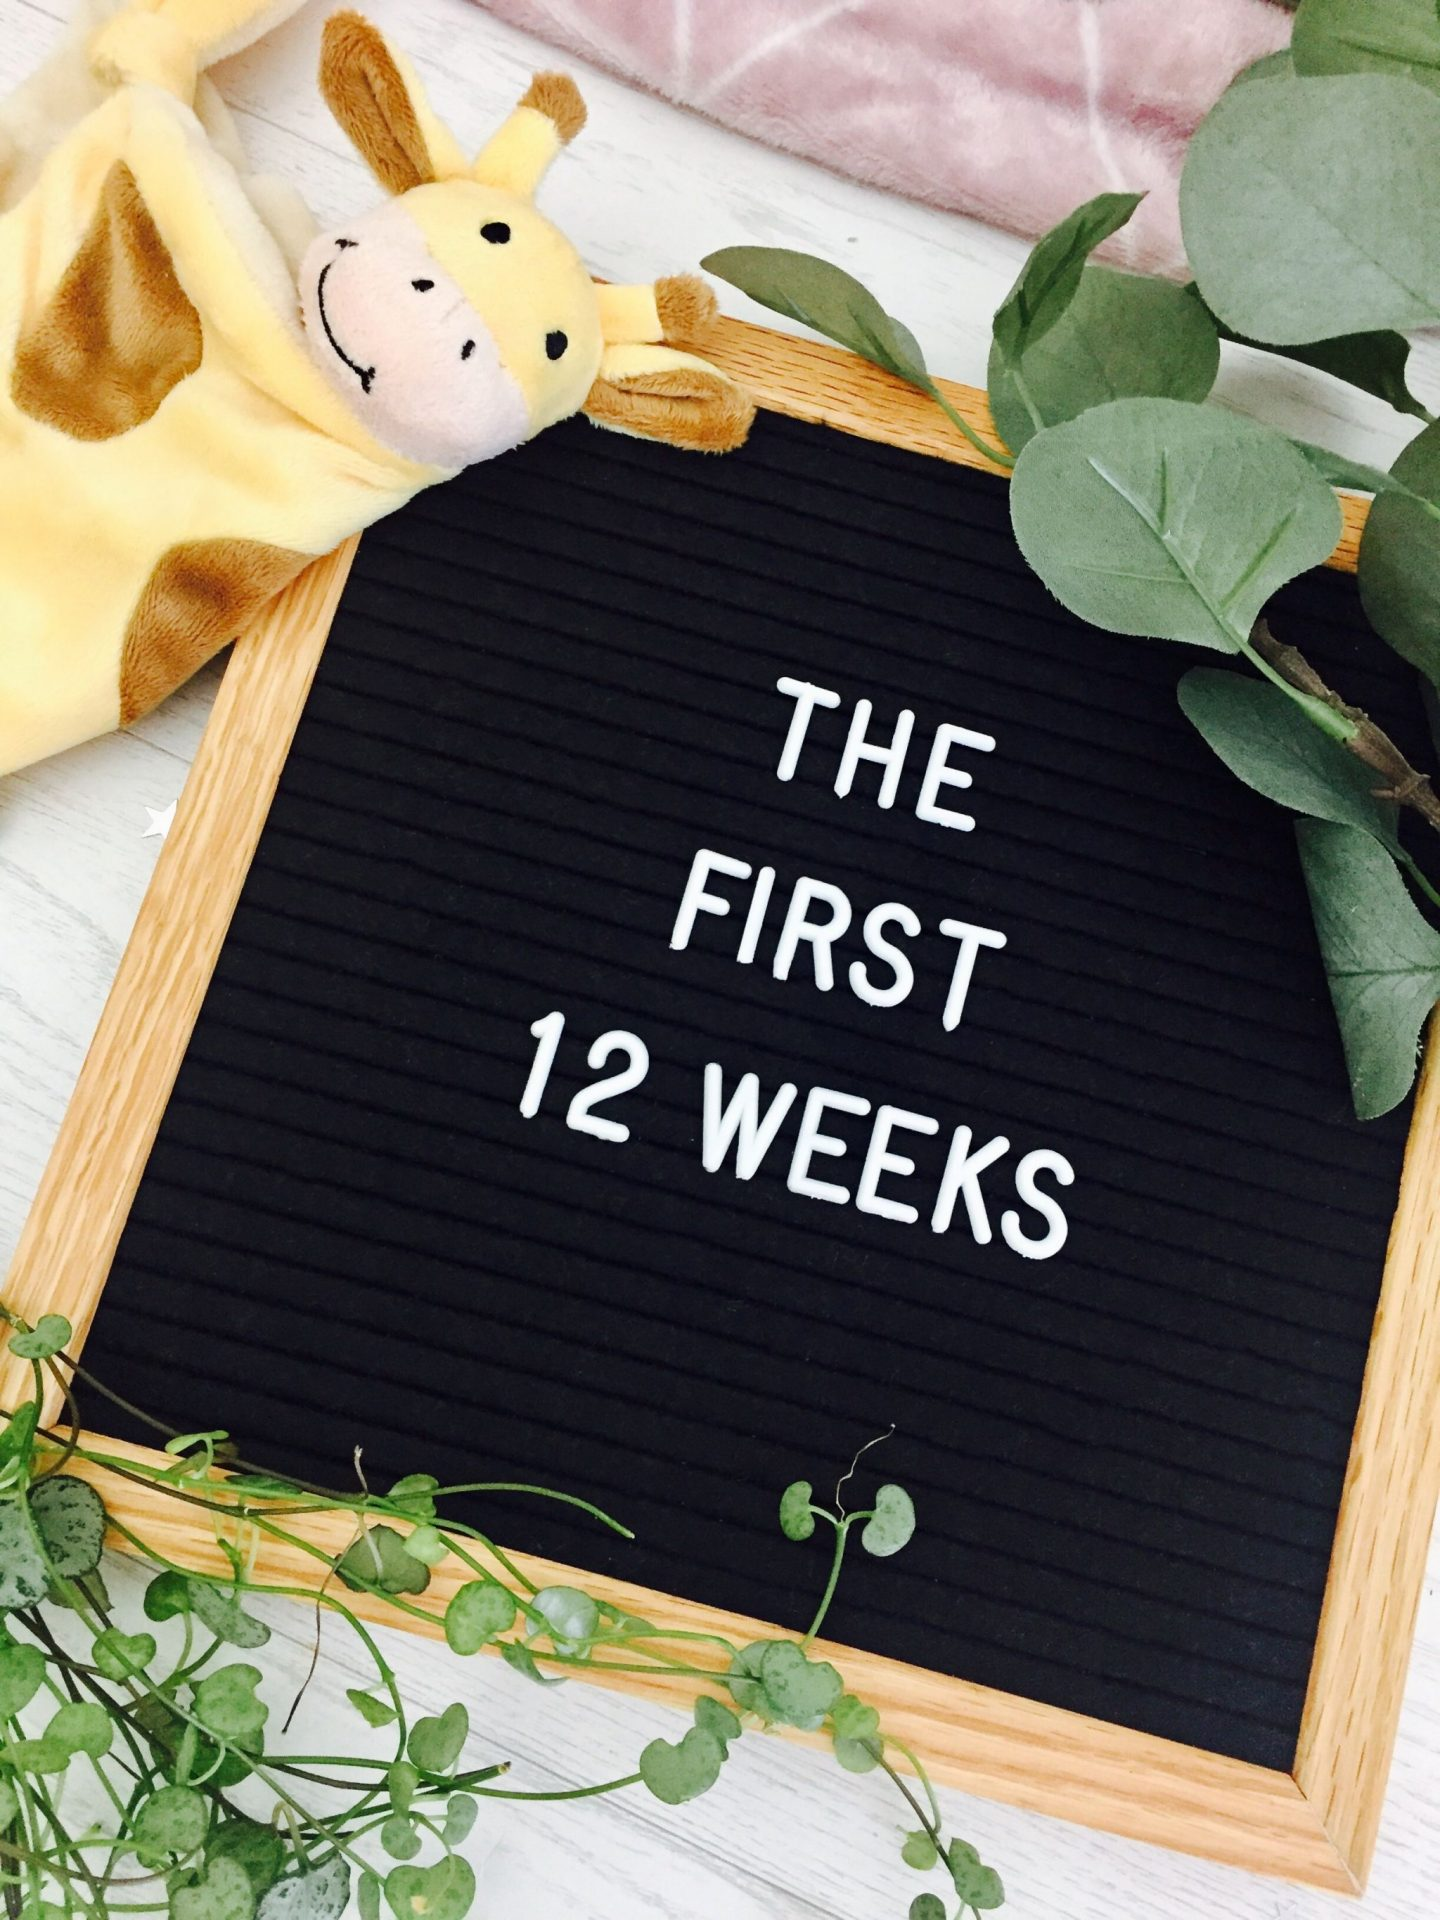 Pregnancy updates first trimester 12 weeks